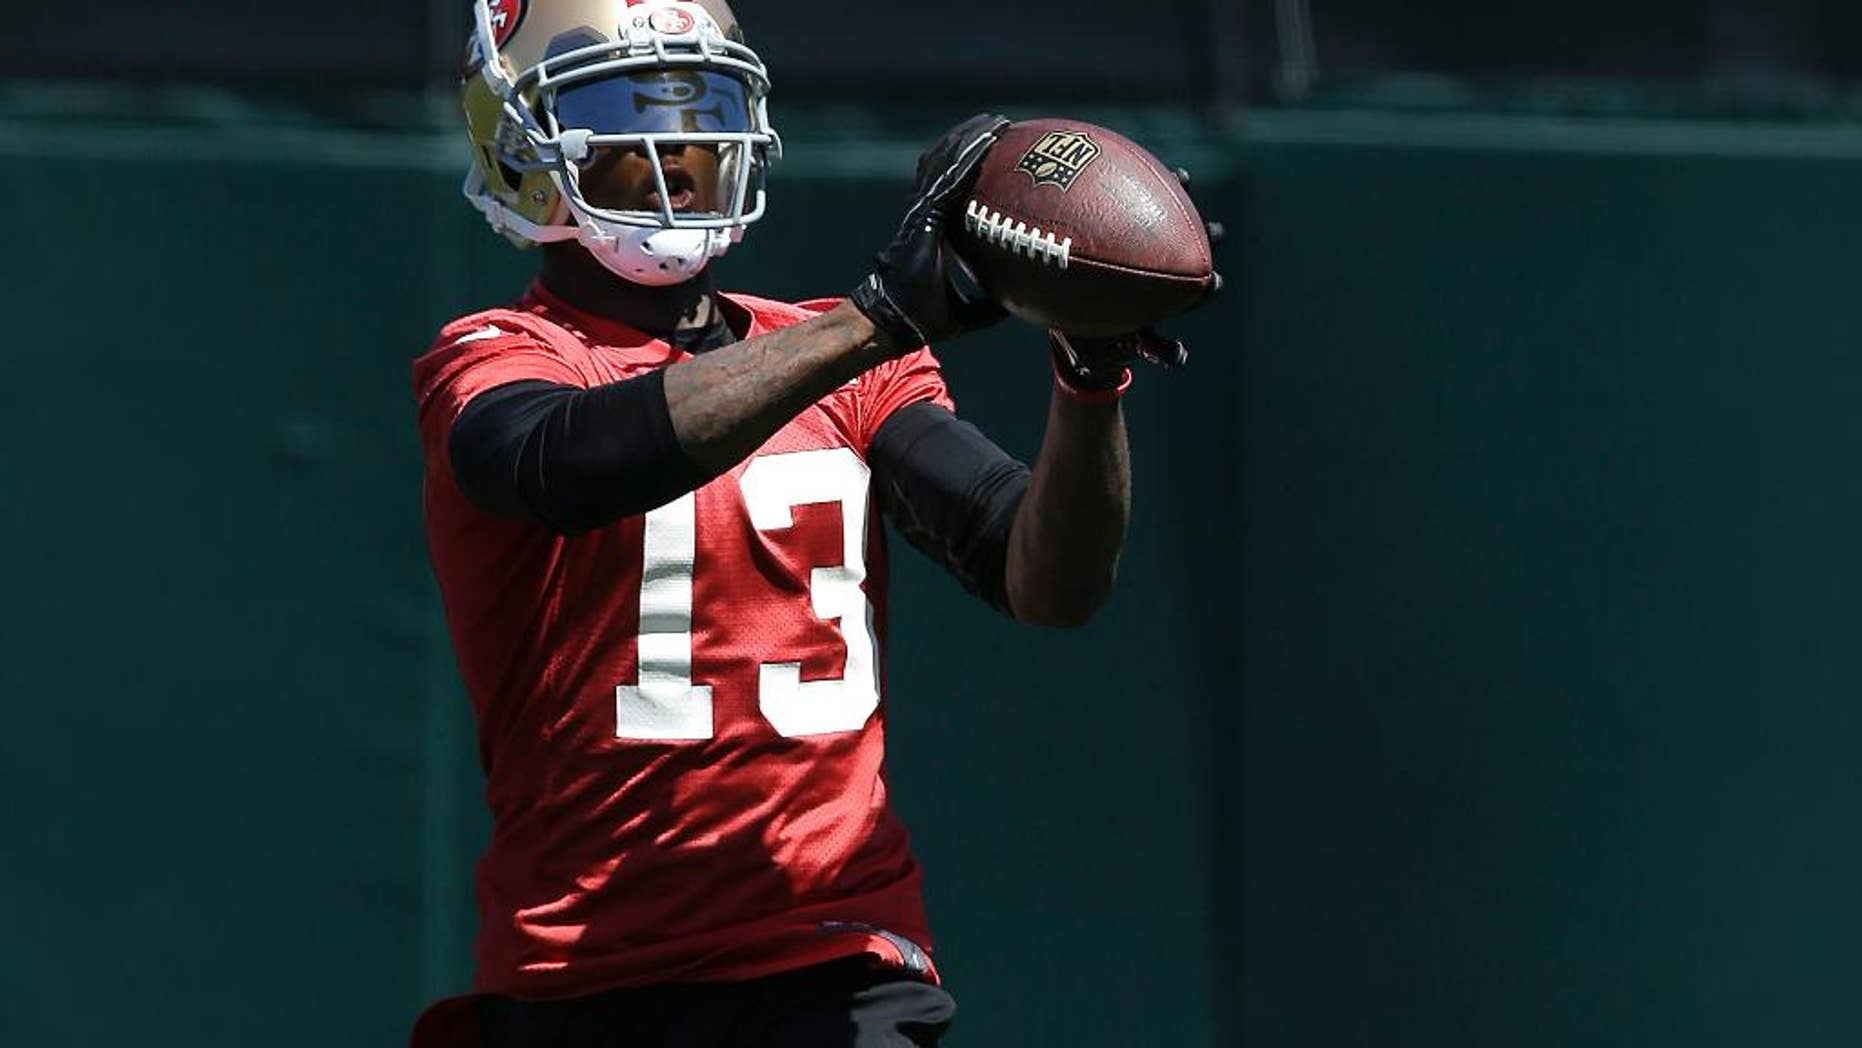 FILE - In this June 17, 2014 file photo, San Francisco 49ers wide receiver Stevie Johnson (13) catches a pass during NFL football minicamp in Santa Clara, Calif. Johnson had produced three straight 1,000-yard seasons with 23 touchdown catches as Buffalo's most dynamic player in the passing game when that streak ended in frustrating fashion last year. There were injuries and the unexpected death of his mother. Now he has a chance to start a new streak with his new team, back home in the Bay Area. AP Photo/Jeff Chiu, File)